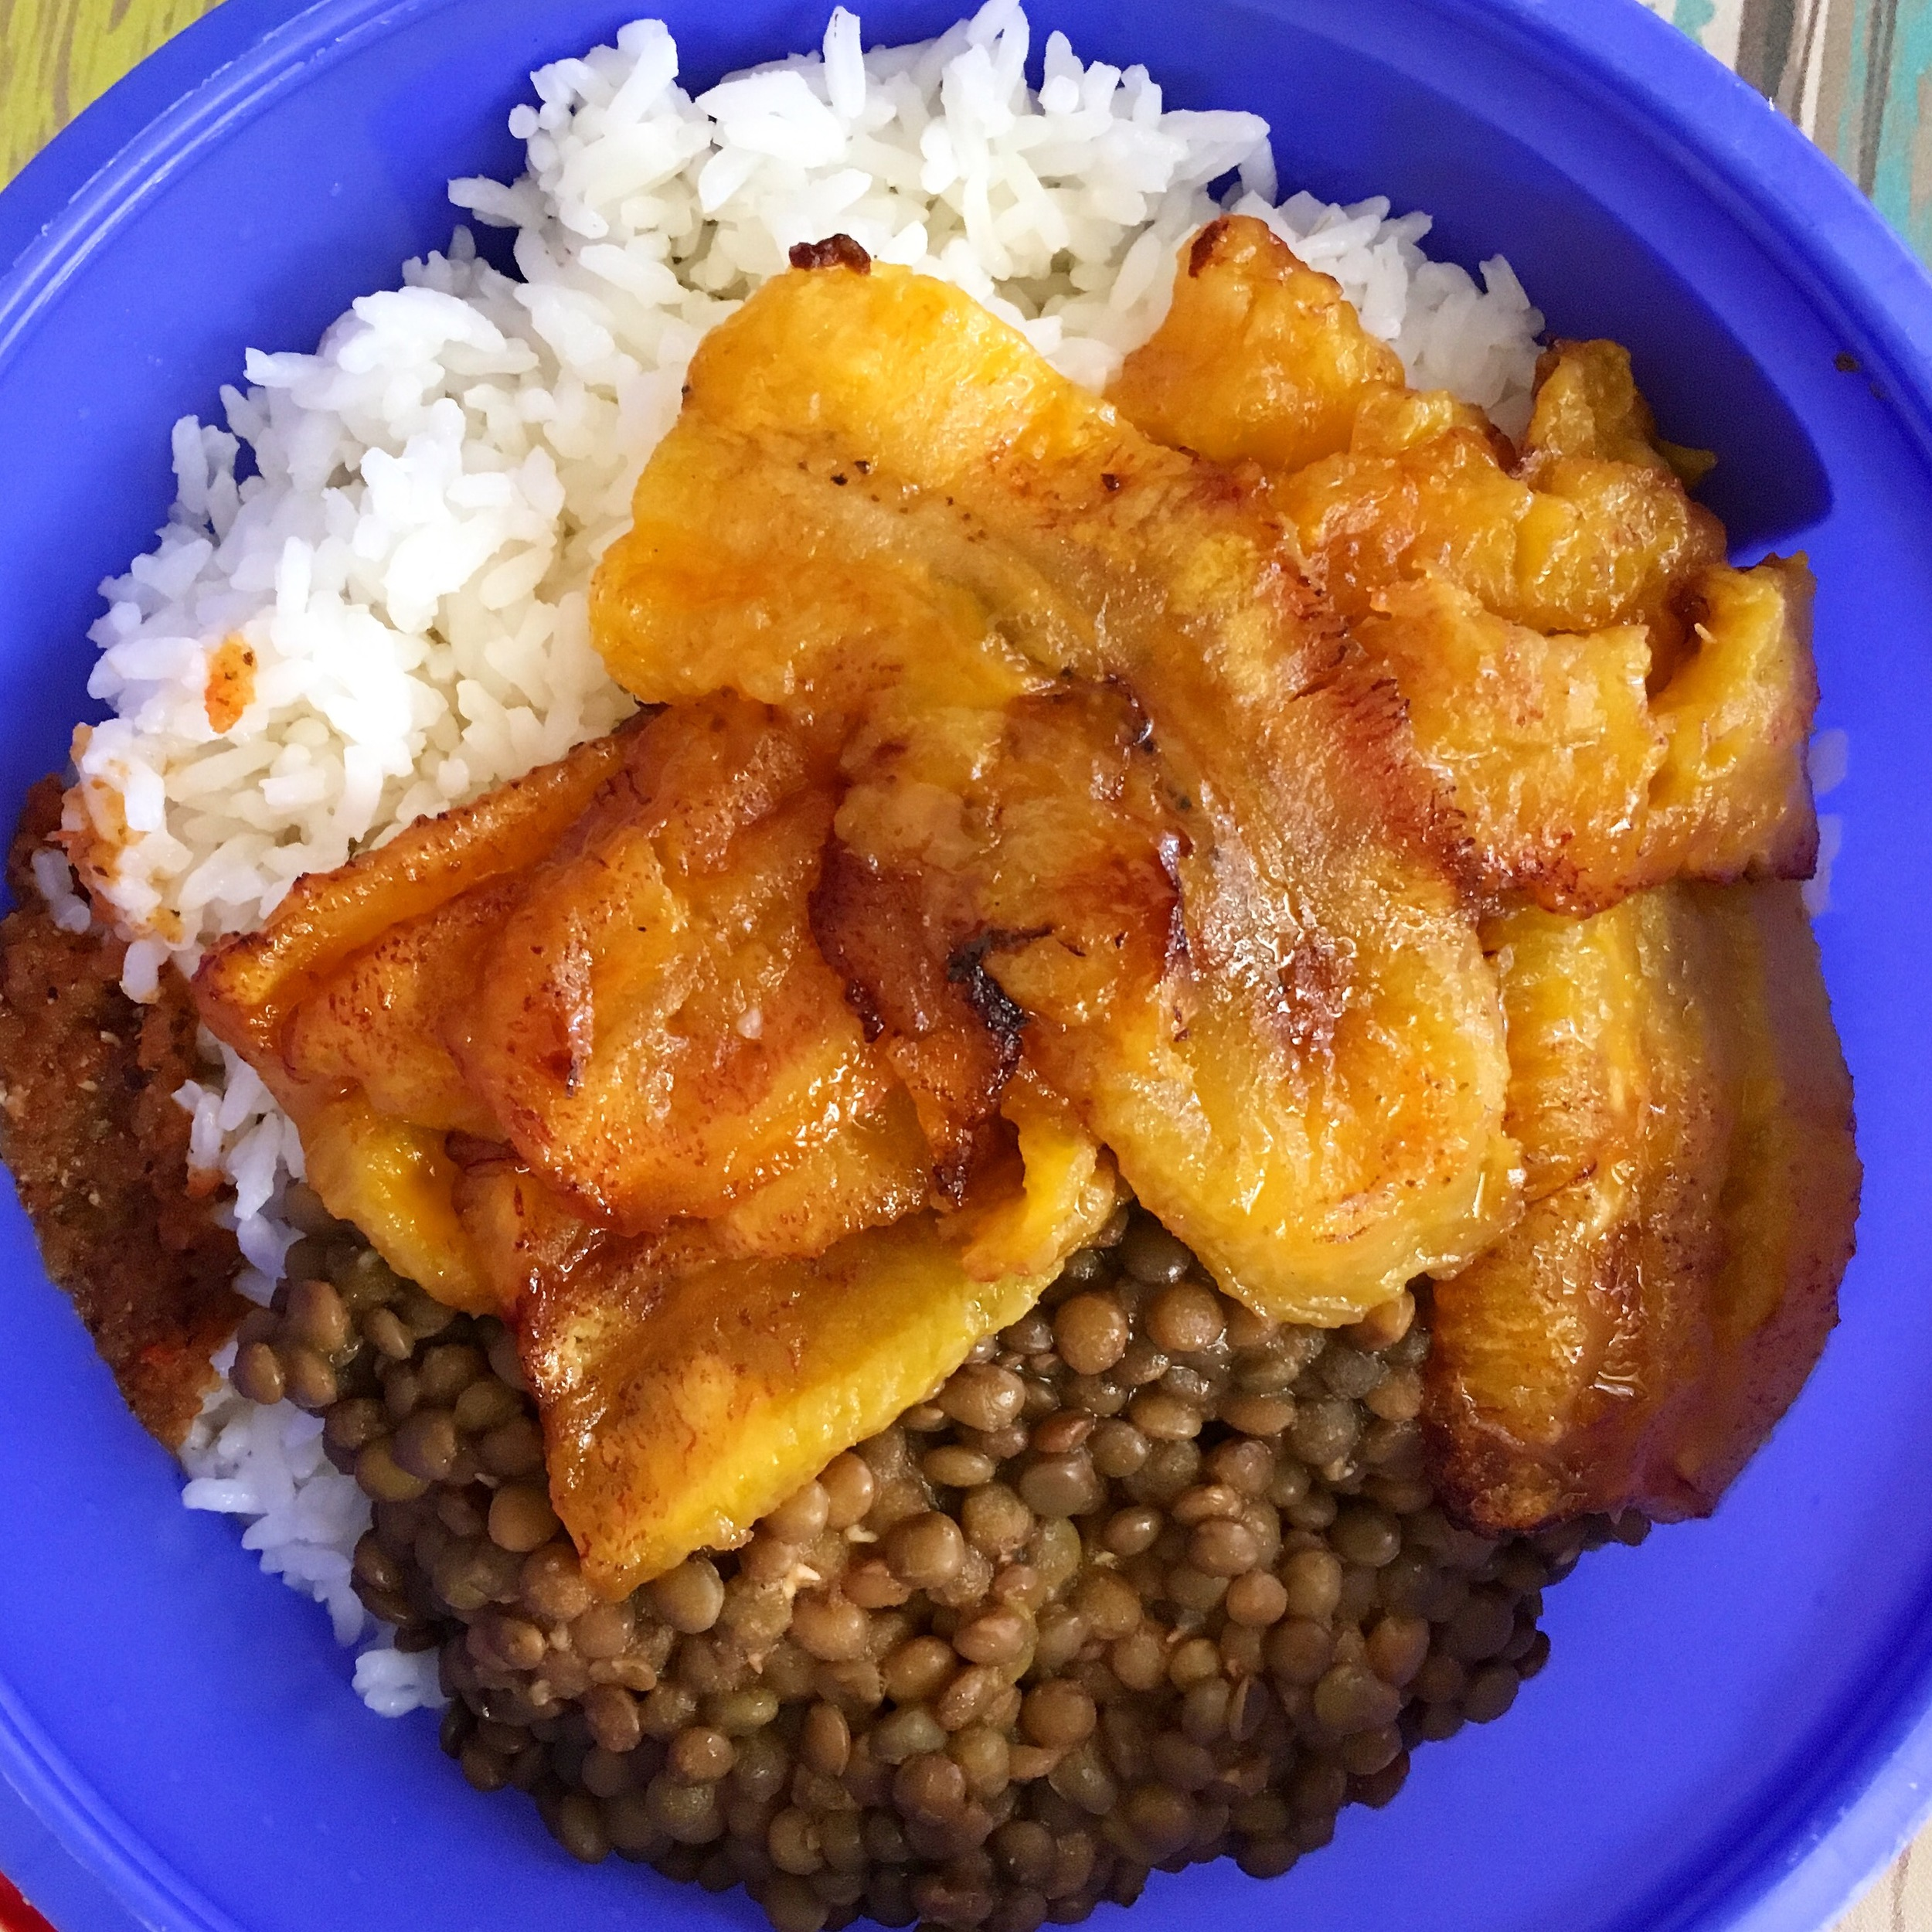 A vegetarian meal of lentils, rice and fried plantains. This was a special request, as none of her main courses come without meat.